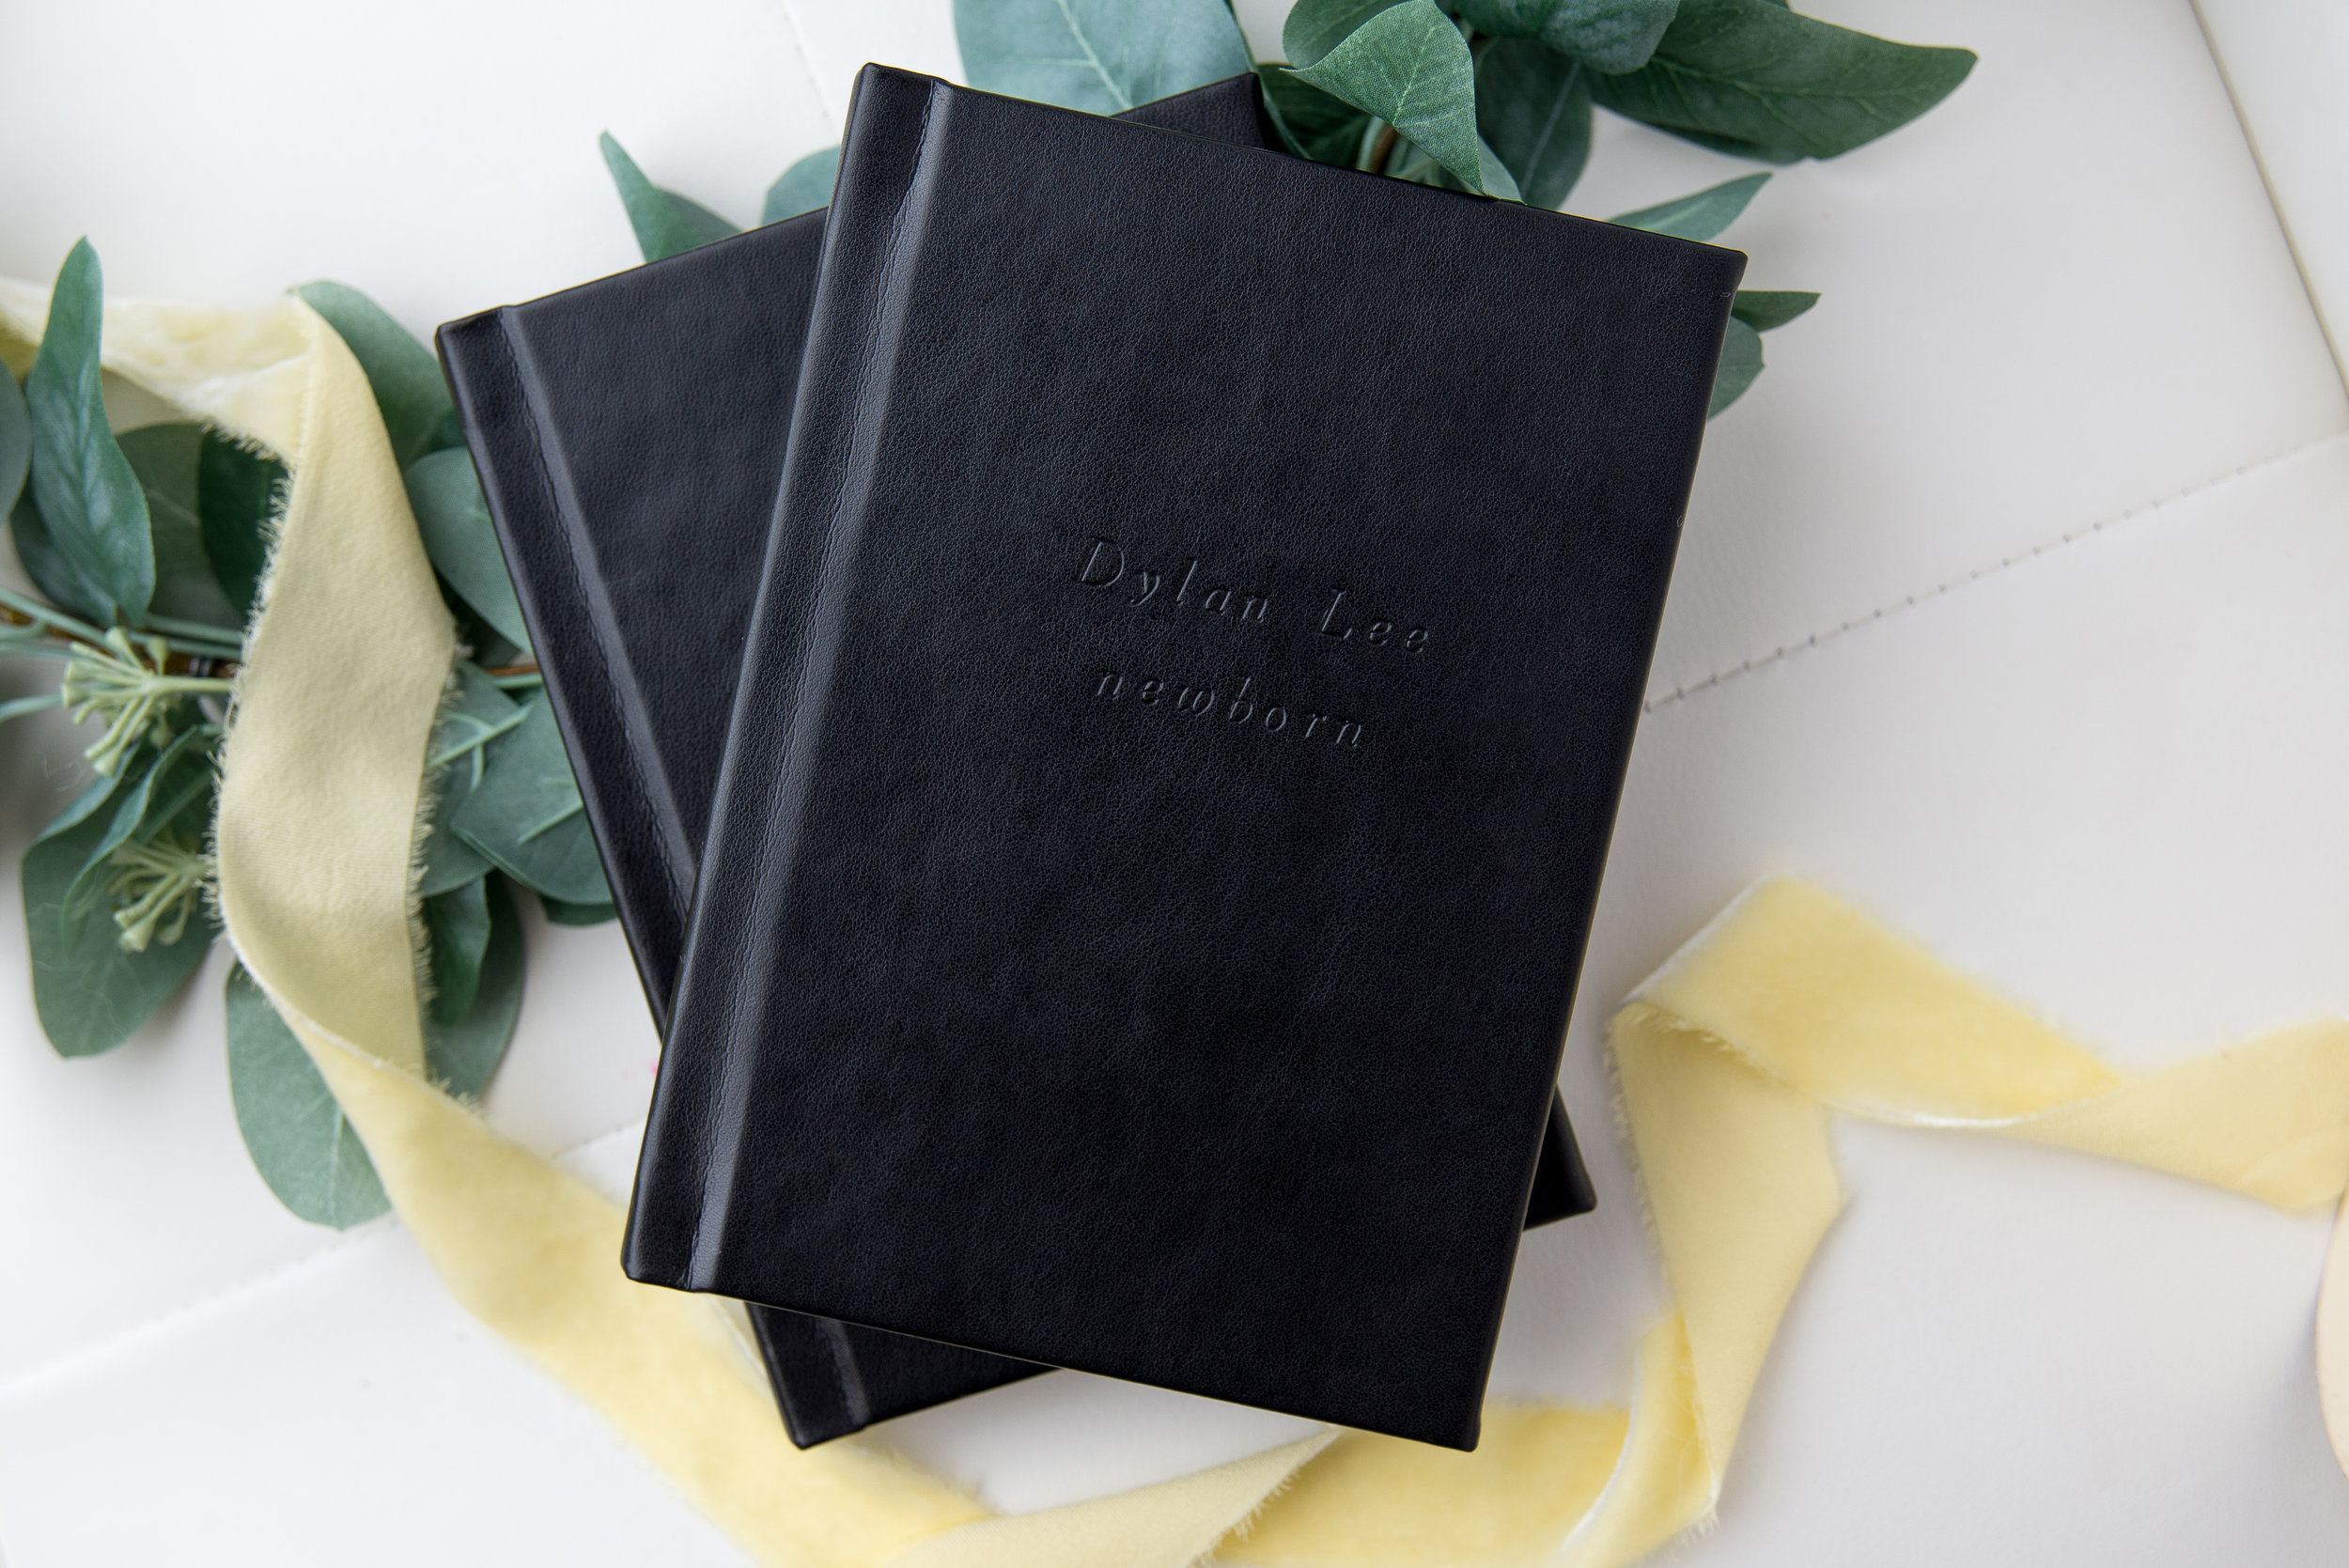 st-louis-photographer-the-session-book-black-book-with-yellow-ribbon-and-greens.jpg